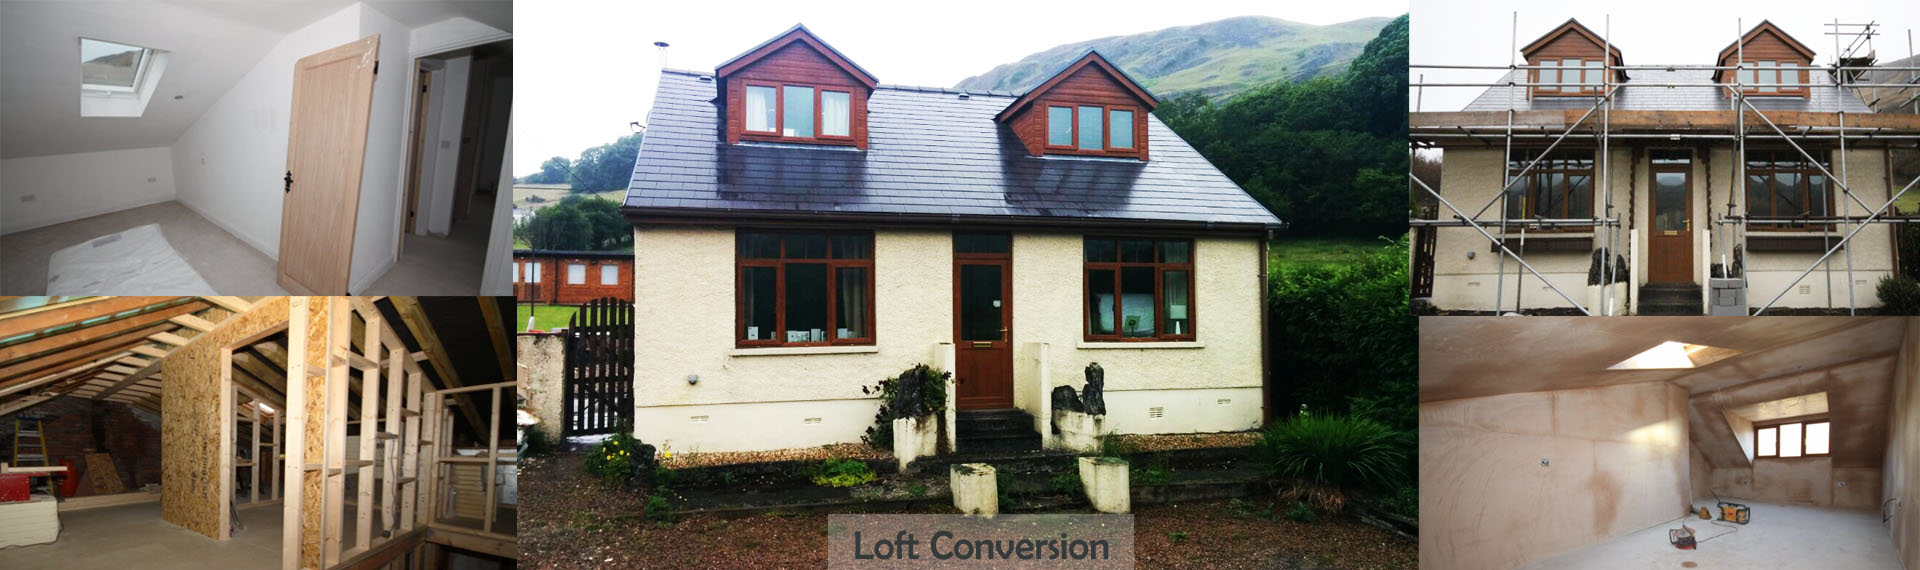 Loft Conversion by S&A Building Contractors in Neath, Port Talbot, Swansea, Porthcawl, Bridgend.